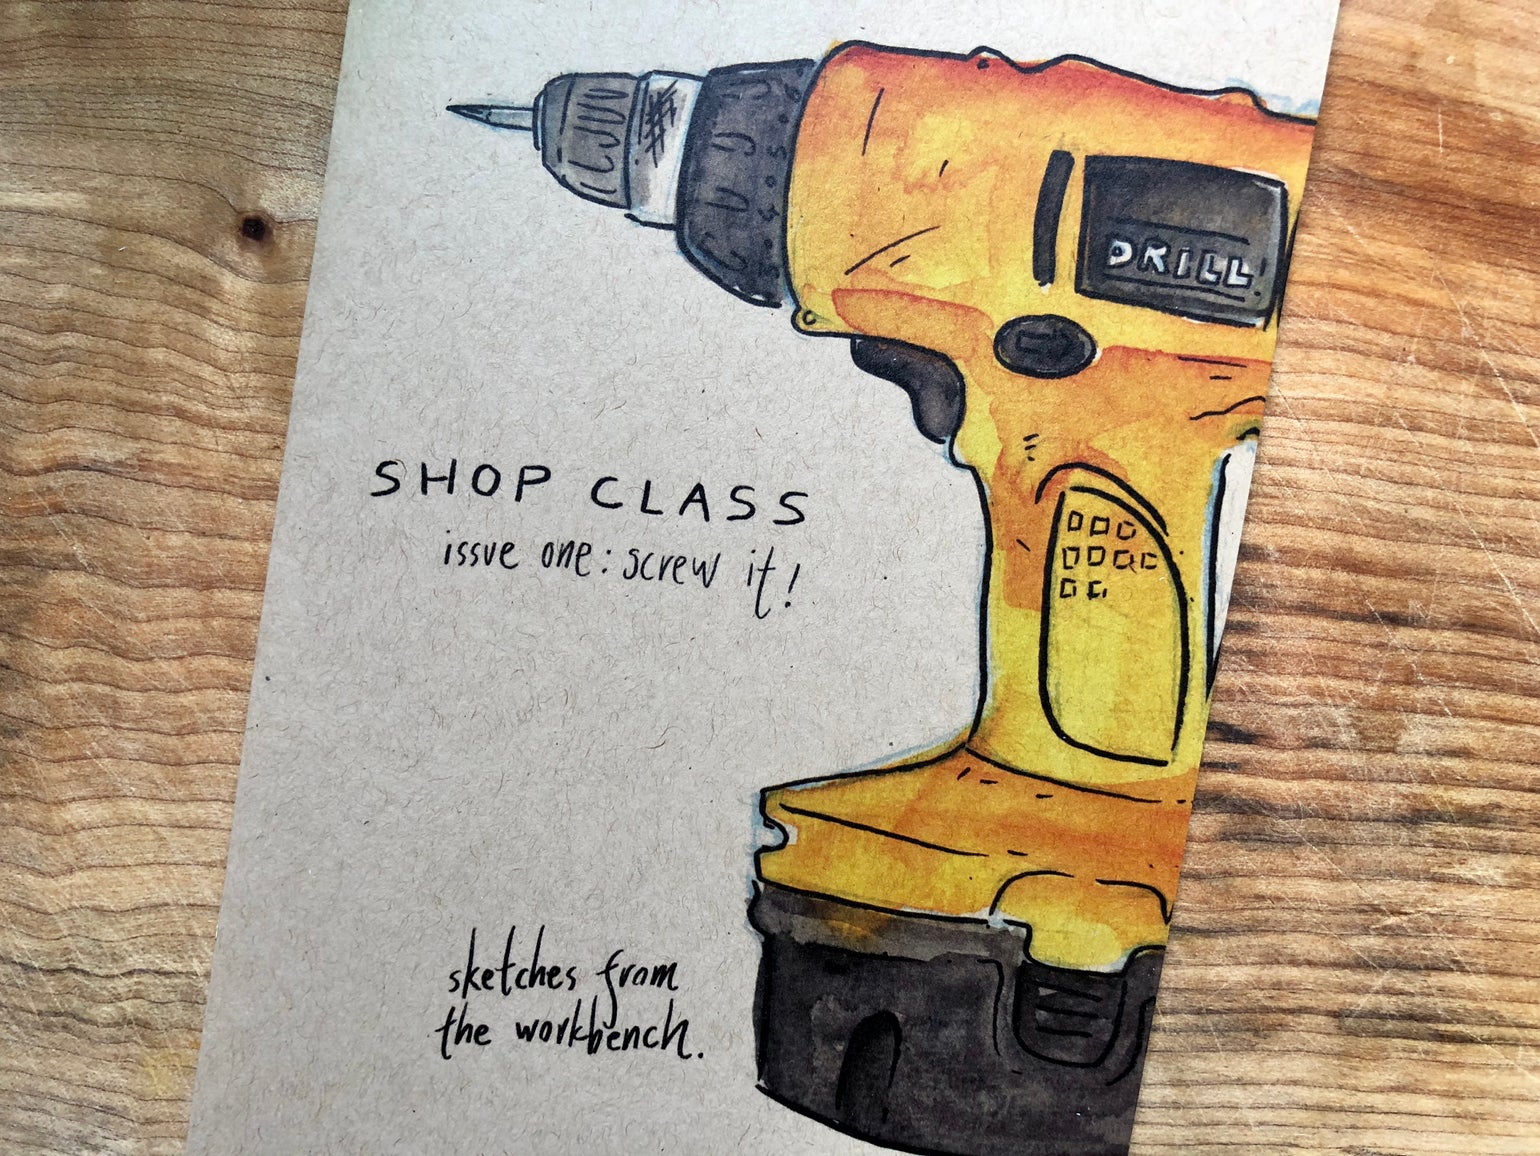 Image of Shop Class - Cordless Drills